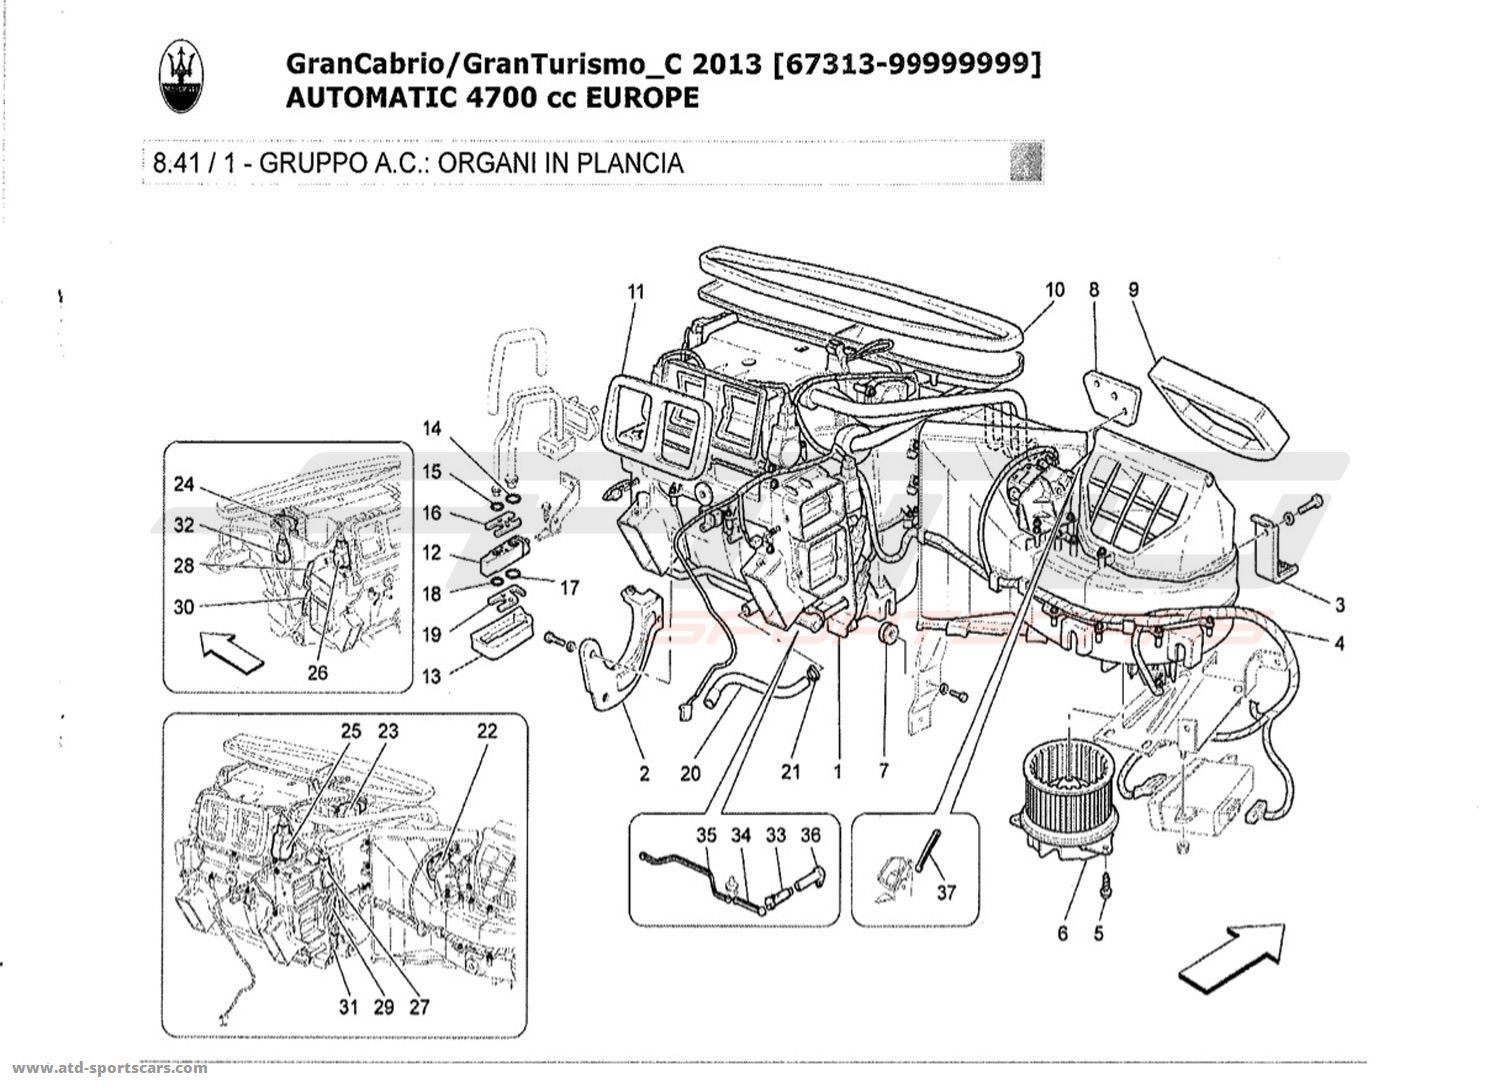 fuse box diagram buick verano  buick  auto fuse box diagram